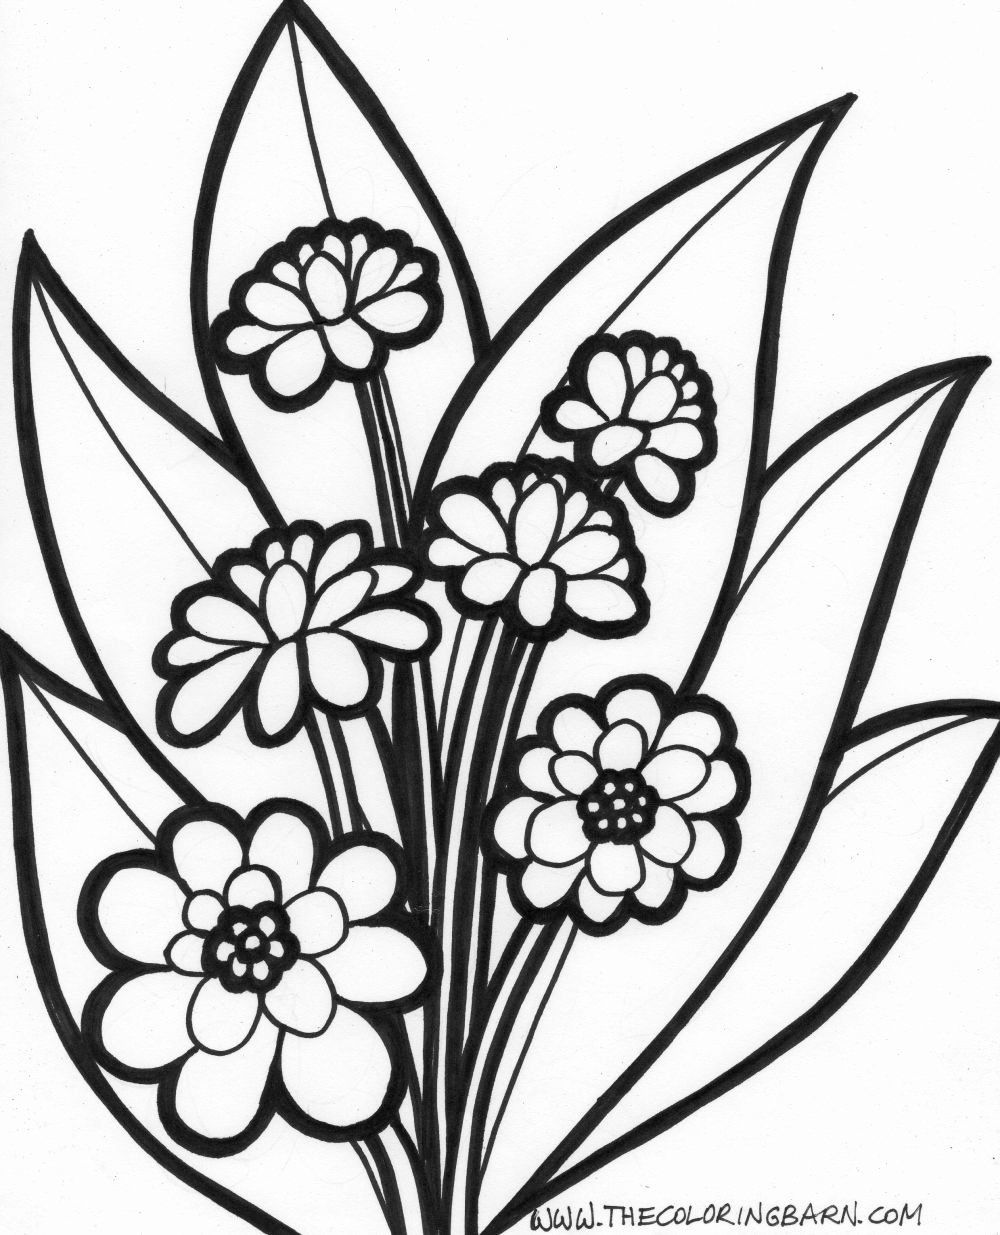 Spring Flowers Coloring Page Inspirational Summer Flowers Printable Coloring Pages Flower Coloring Pages Printable Flower Coloring Pages Flower Coloring Sheets